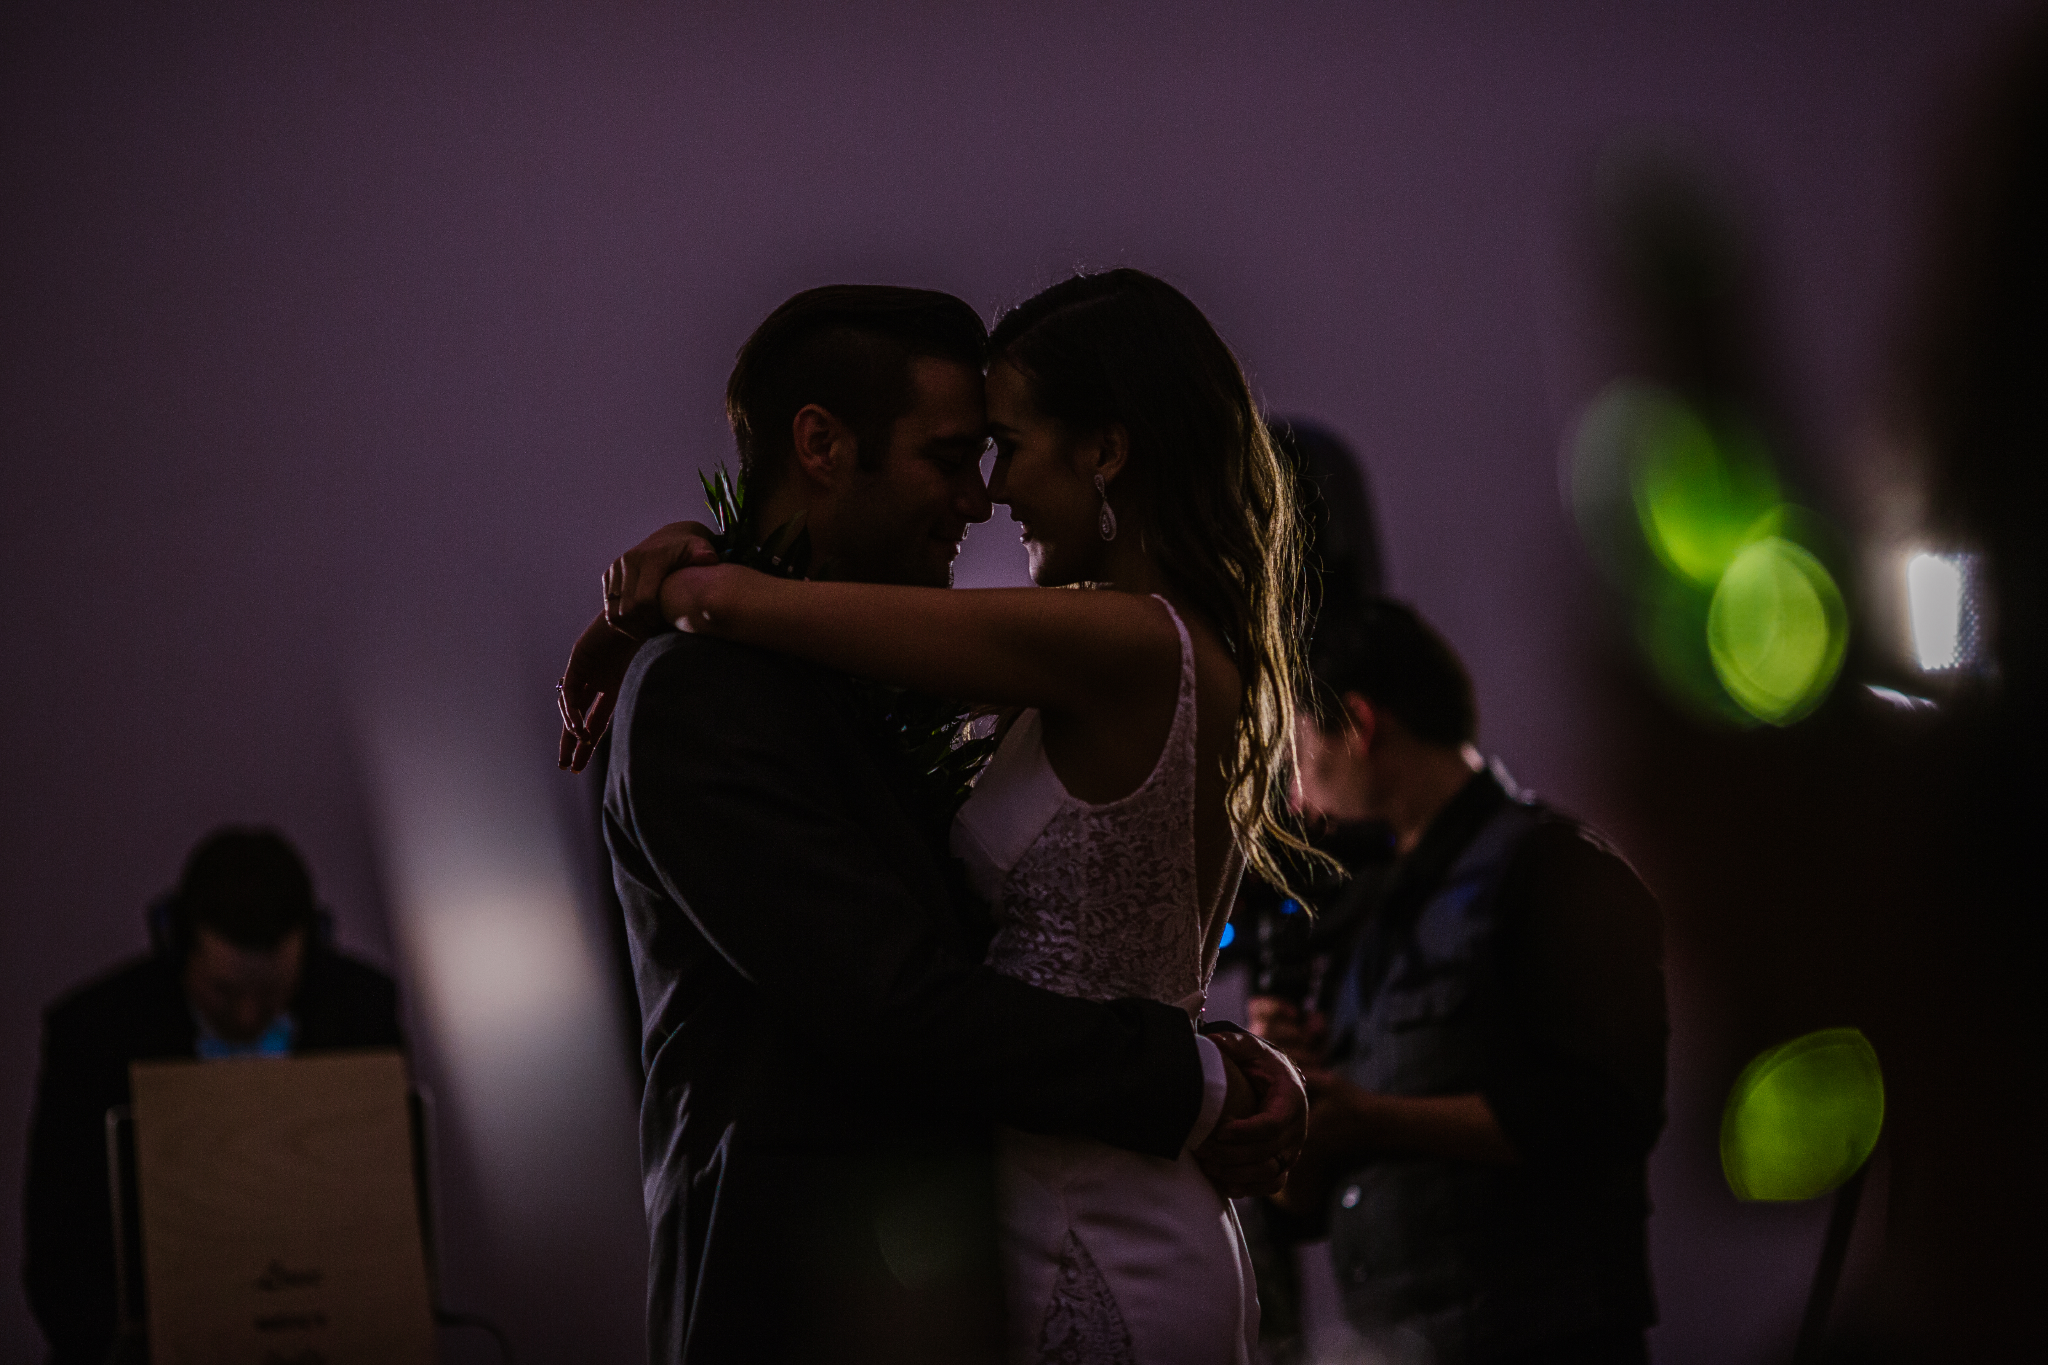 san diego wedding   photographer | low light picture of bride and groom slow dancing